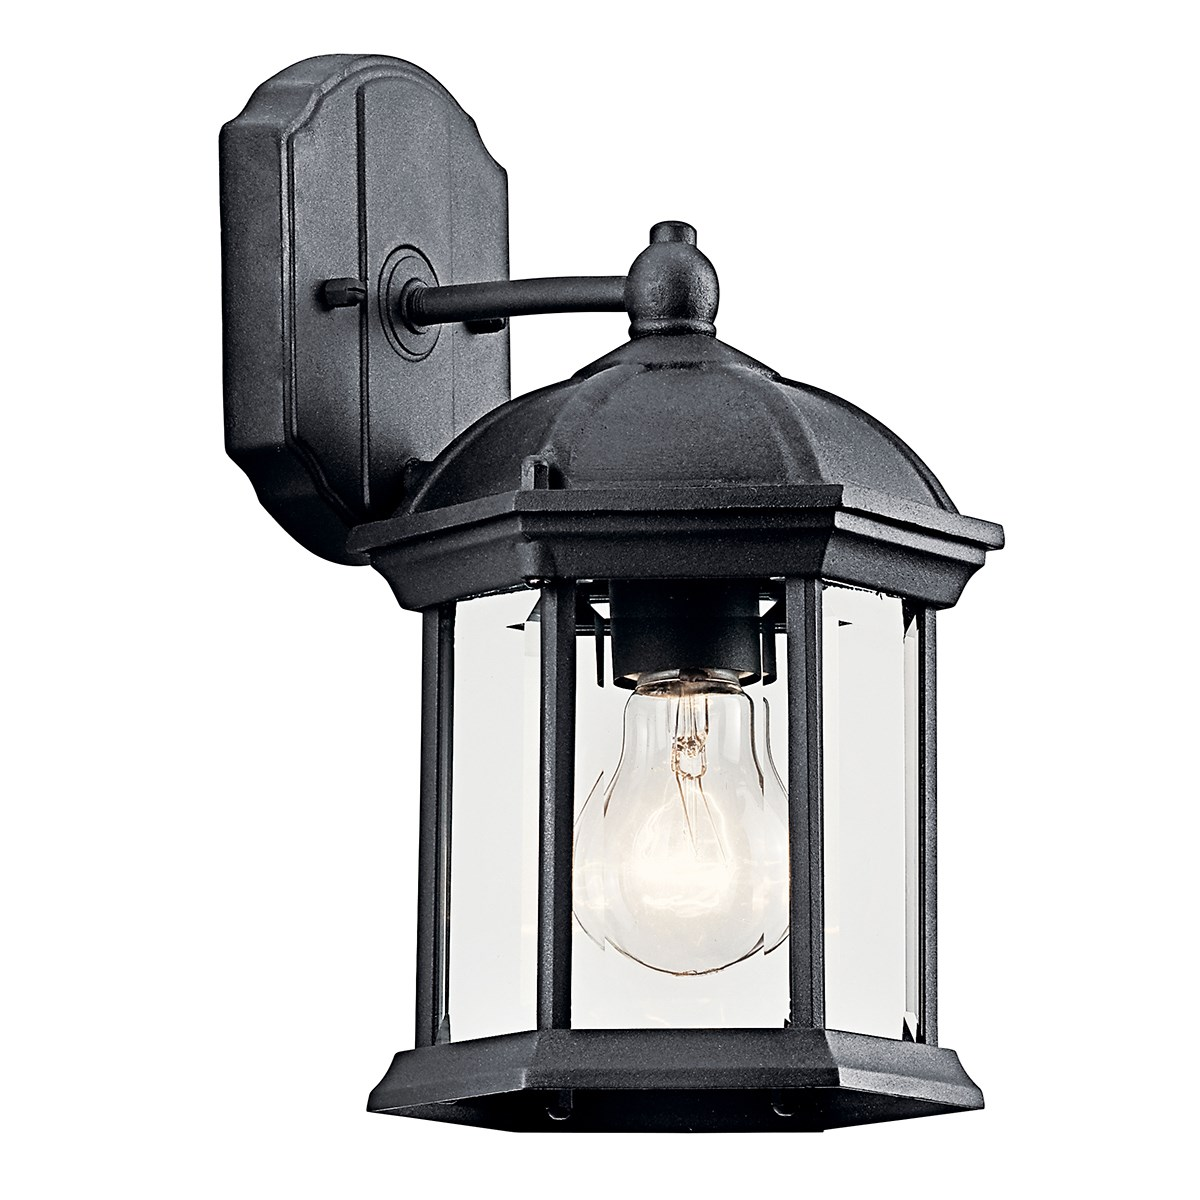 Barrie 10 25 1 light wall light with led bulb black